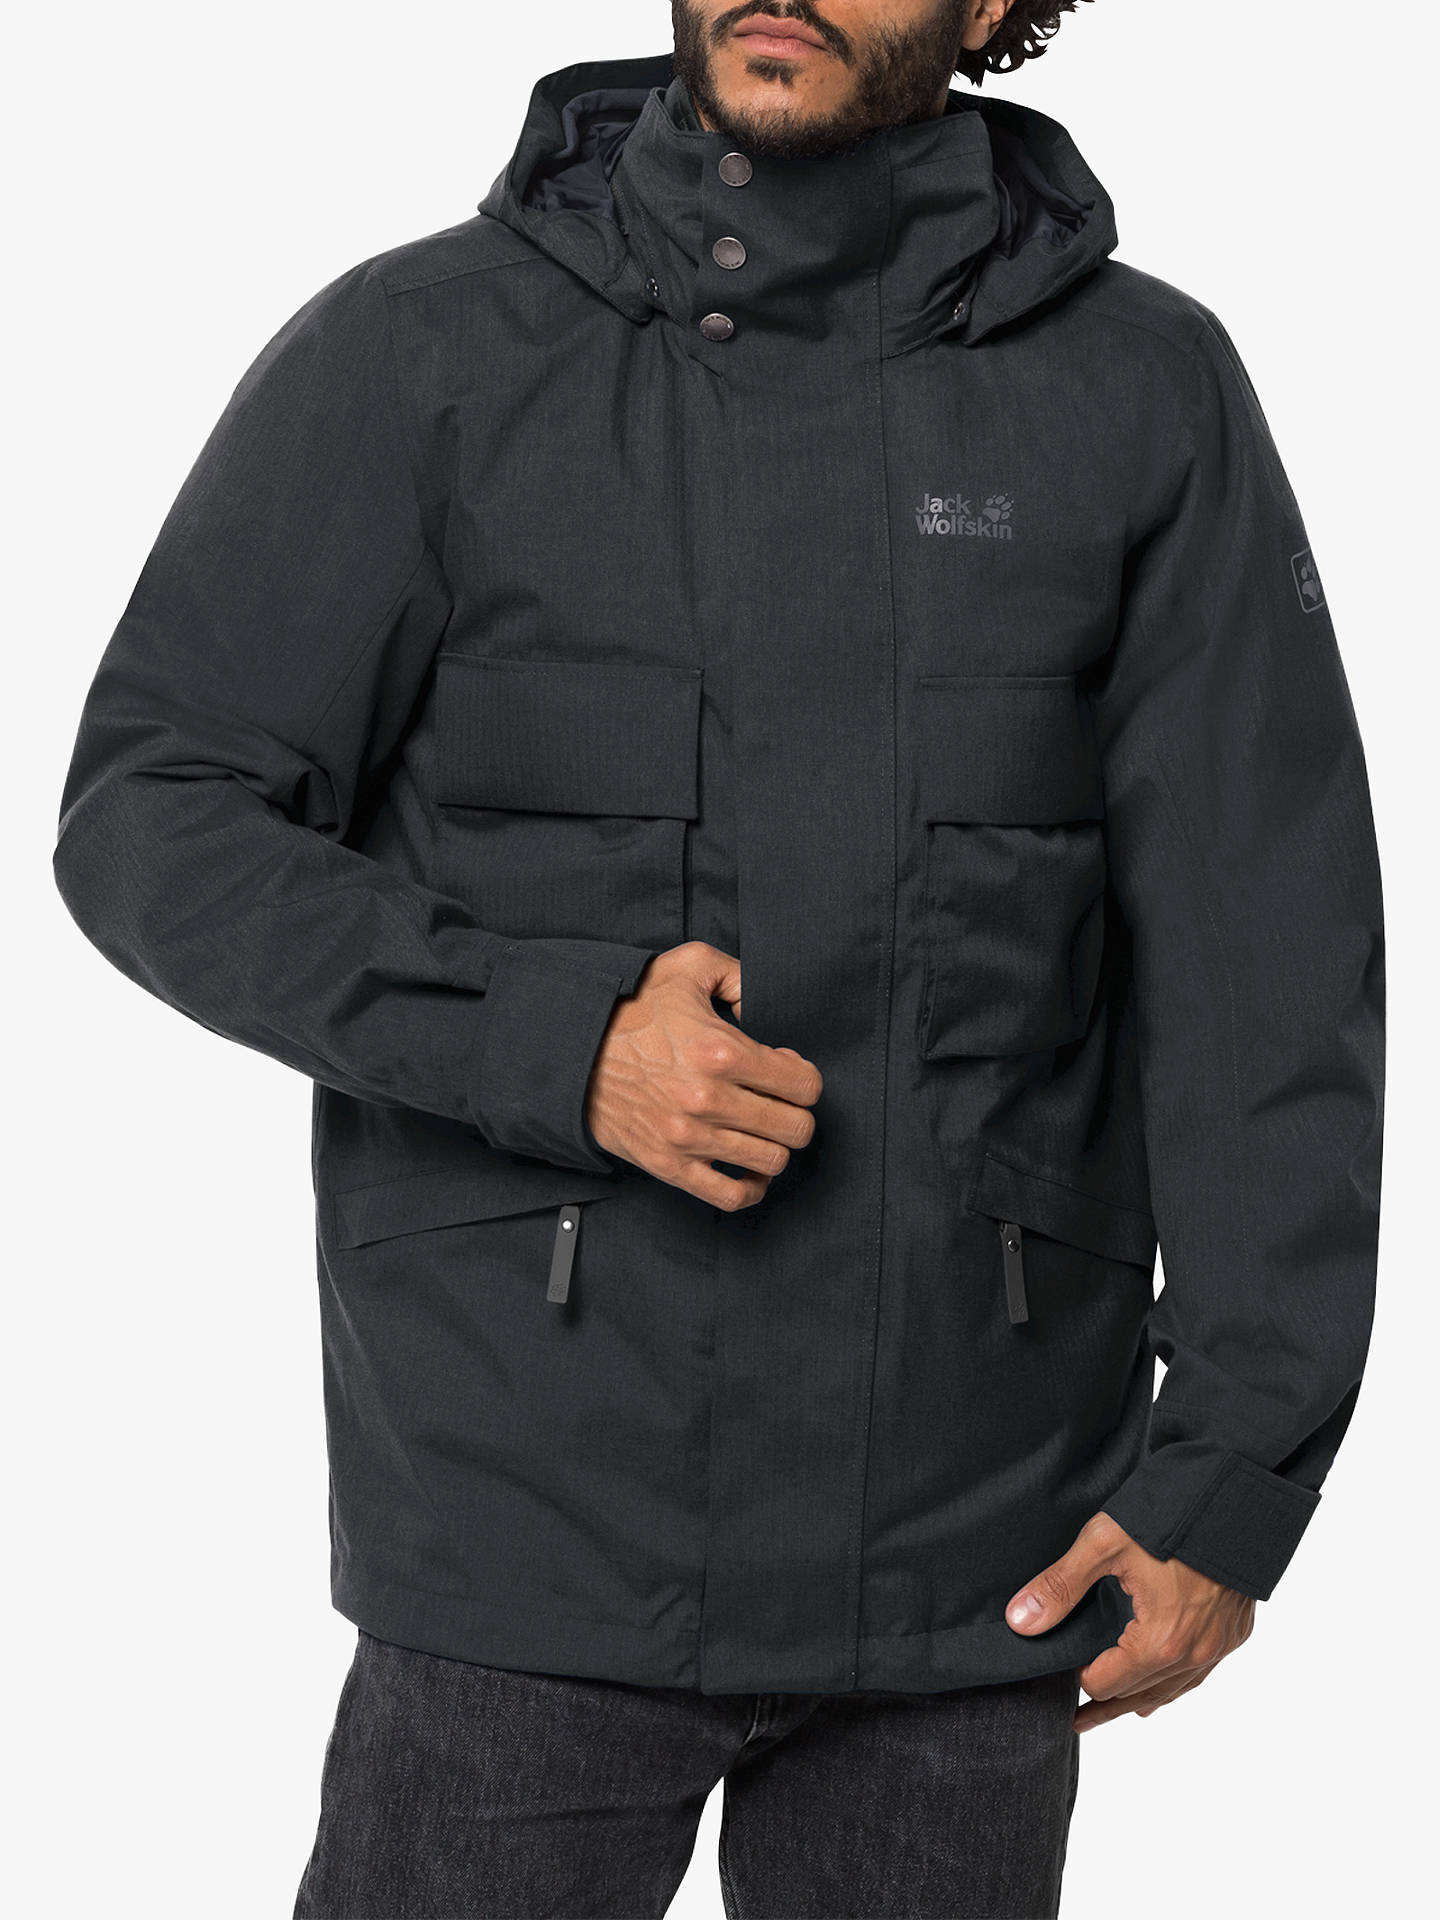 the best attitude c38c1 76630 Jack Wolfskin Takamatsu 3-in-1 Men's Waterproof Jacket, Phantom